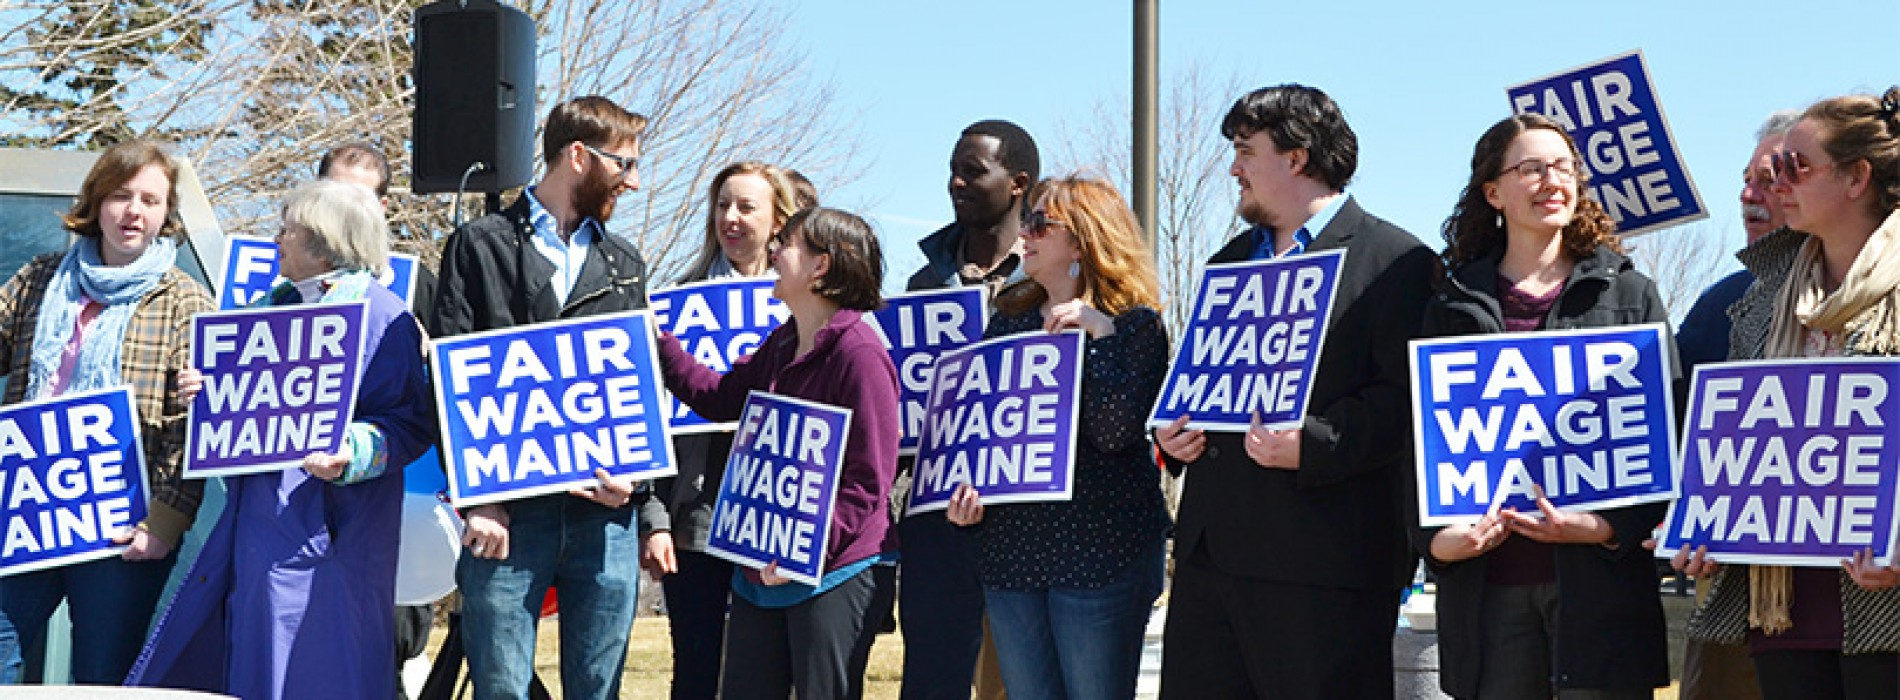 Fair Wage Maine